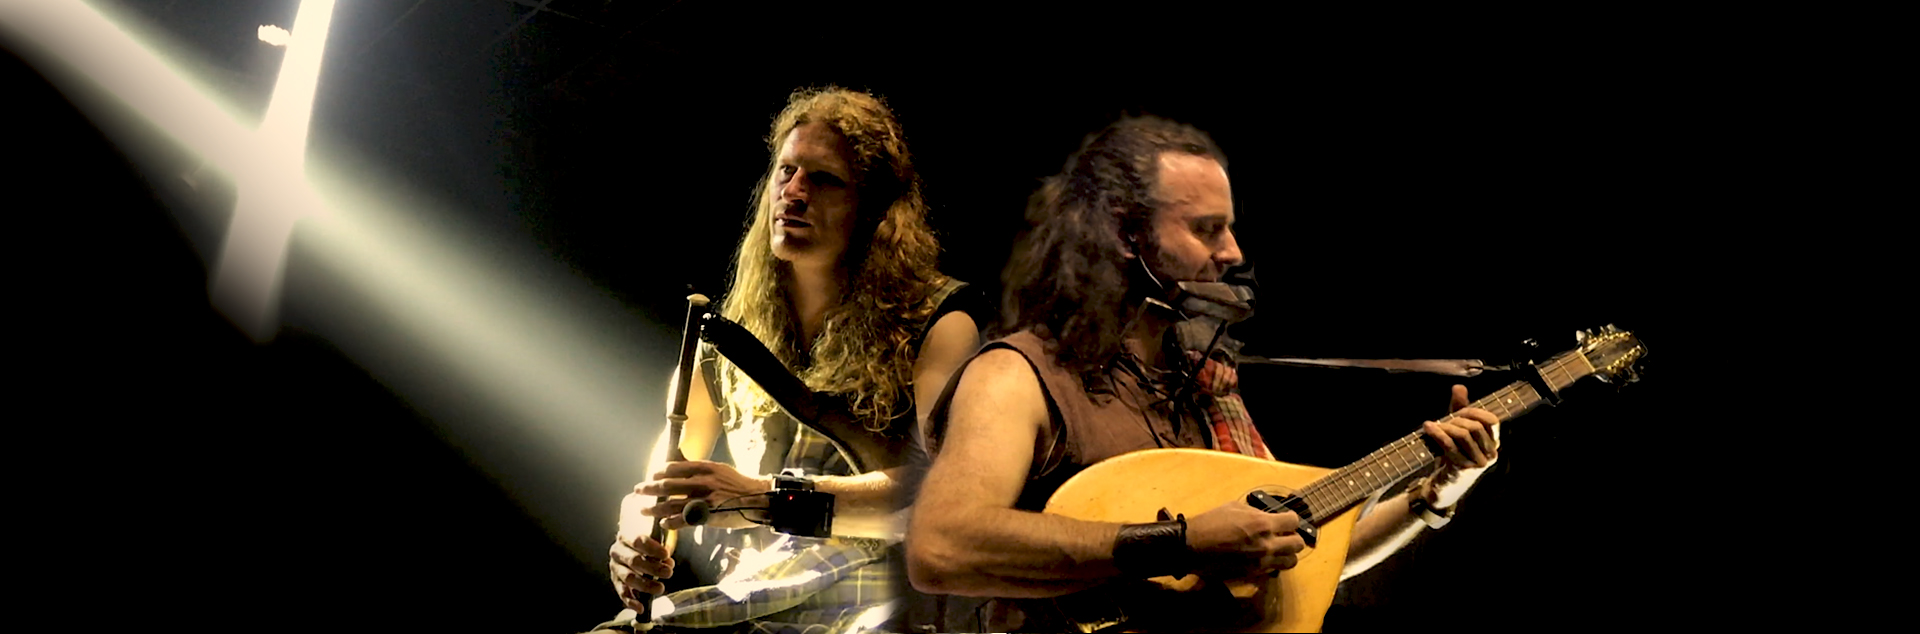 Caledonia-at-Odin's-Krieger-Festival-in-Brazil-Rapalje-Celtic-Folk-Music